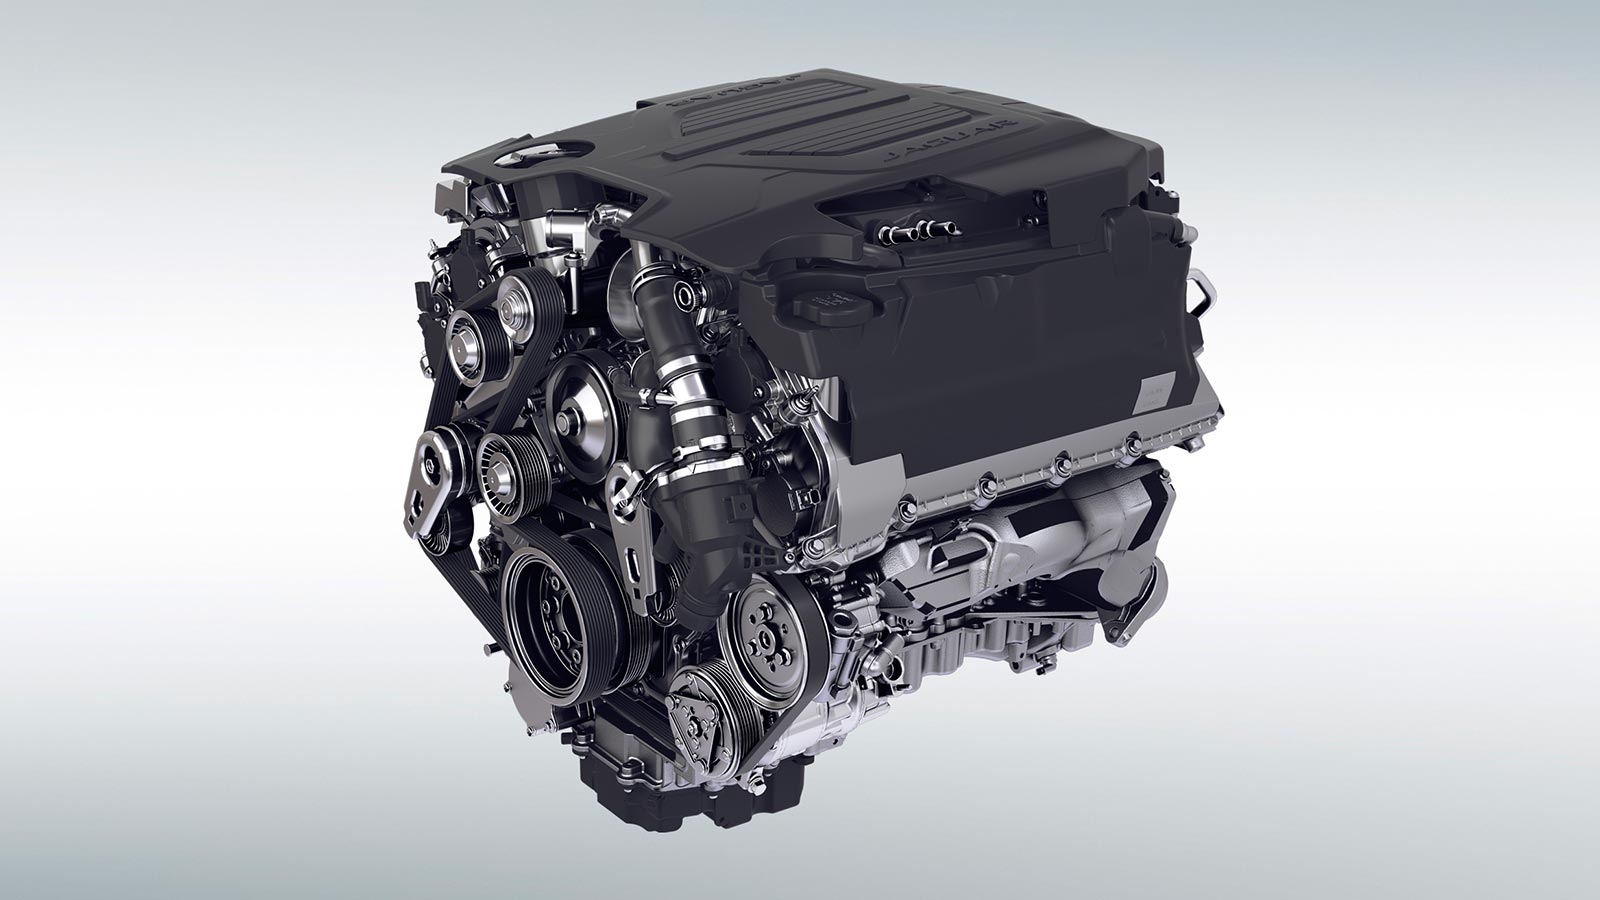 3.0-Liter V6 Supercharged Gas Engine